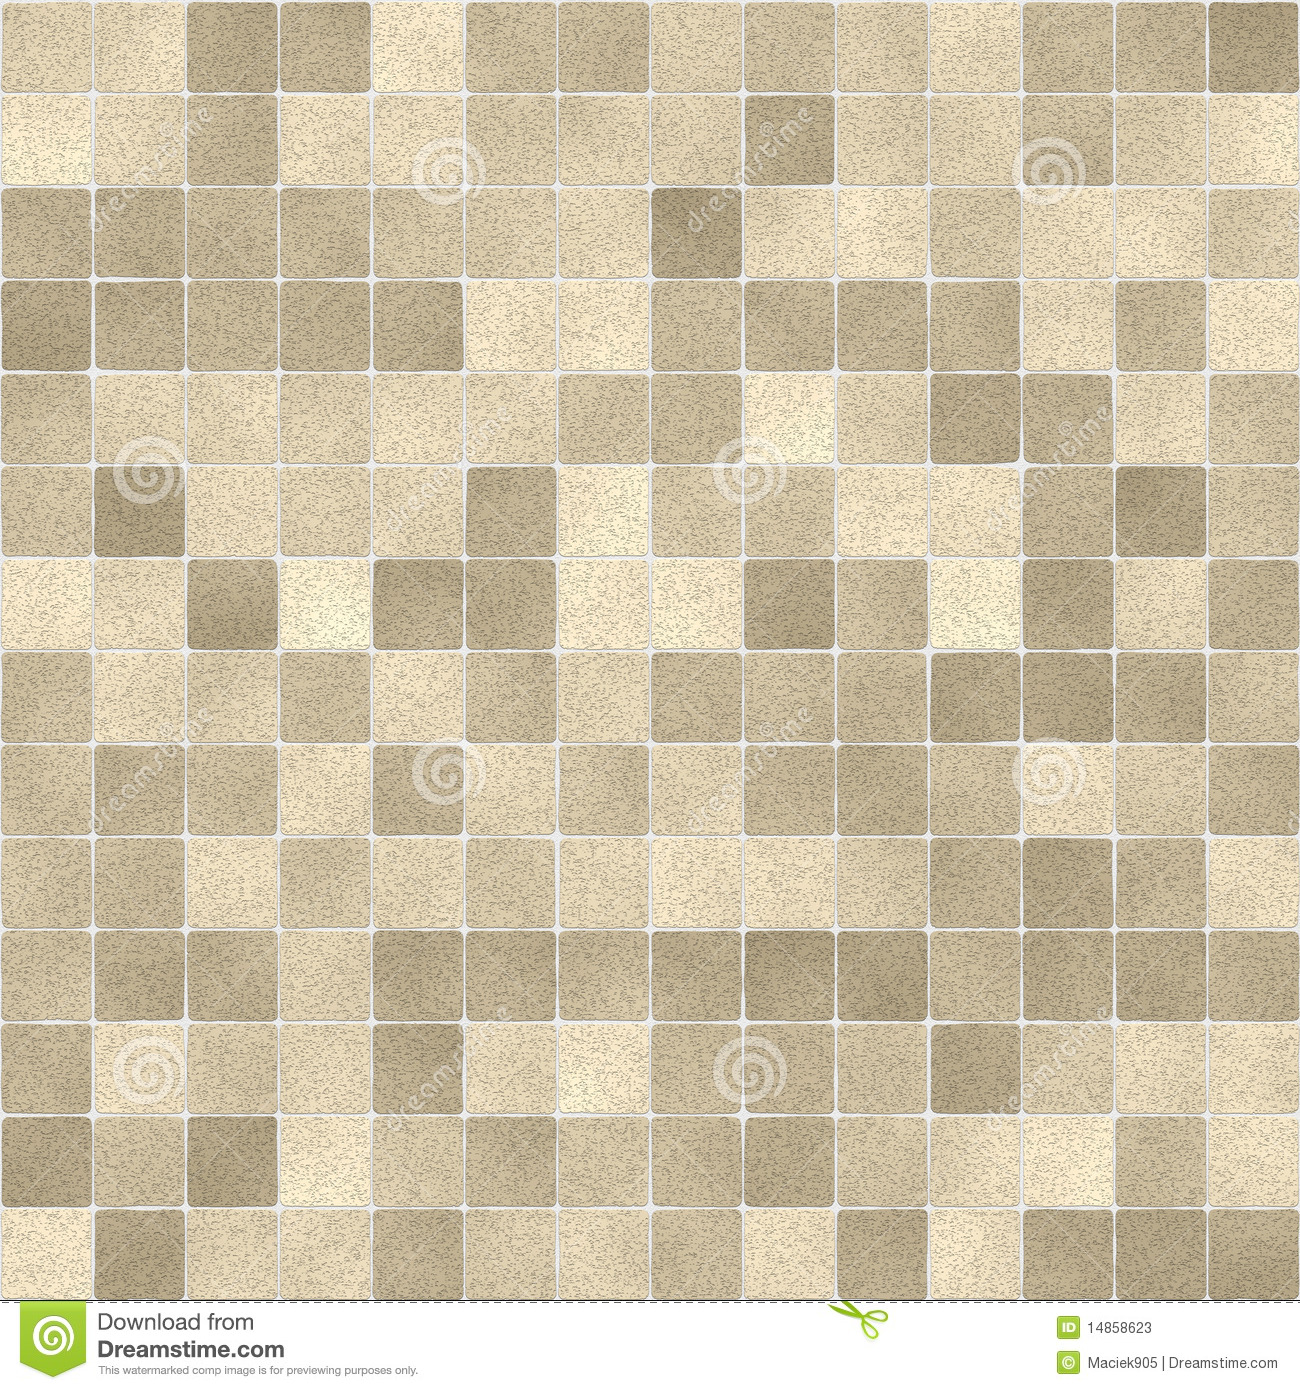 Seamless Bathroom Wallpaper Texture